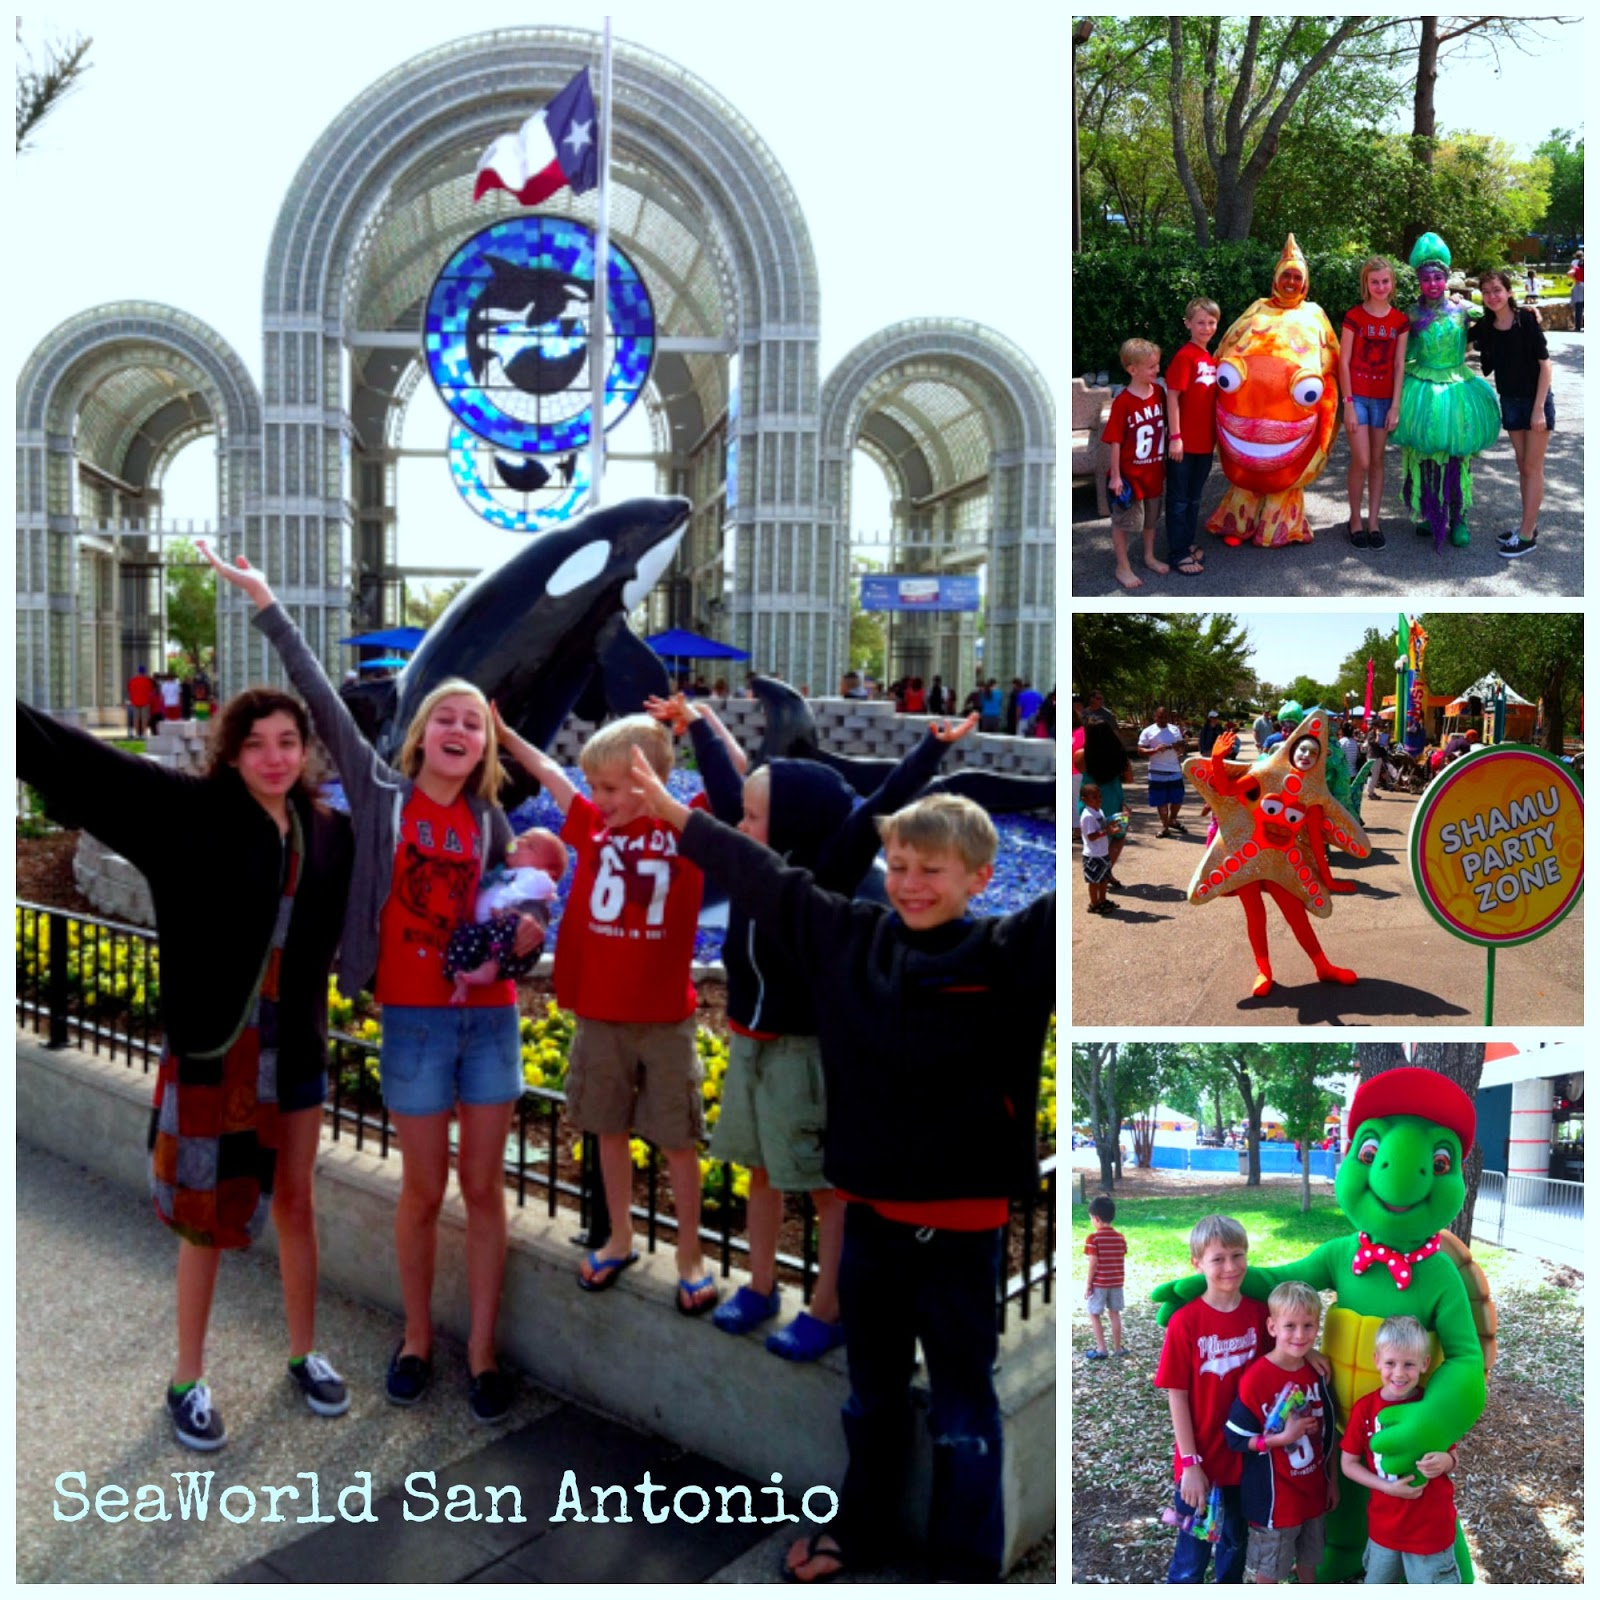 picture regarding Seaworld San Antonio Coupons Printable named 2013 Offers for SeaWorld San Antonio Totally free Pleasurable within just Austin